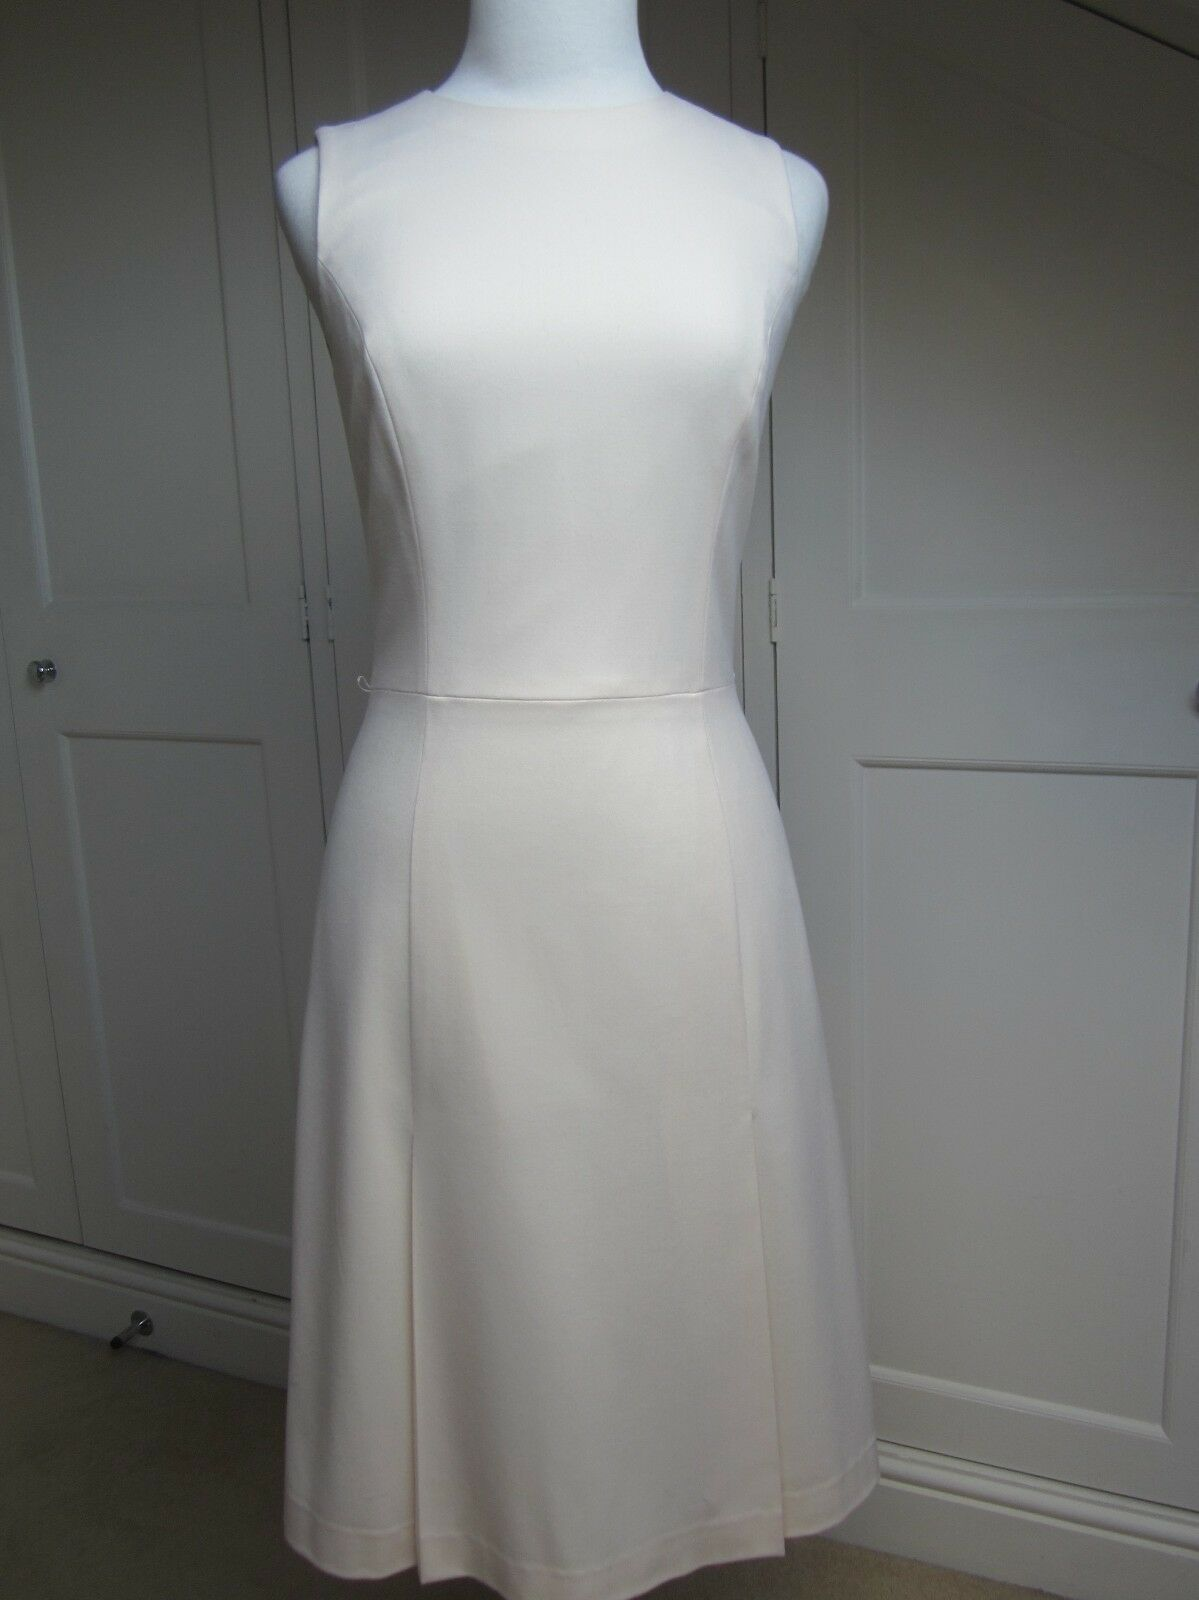 Theory Cream Cream Cream Wool Fitted Shift Dress. Size 8 (US 4) d9cd74